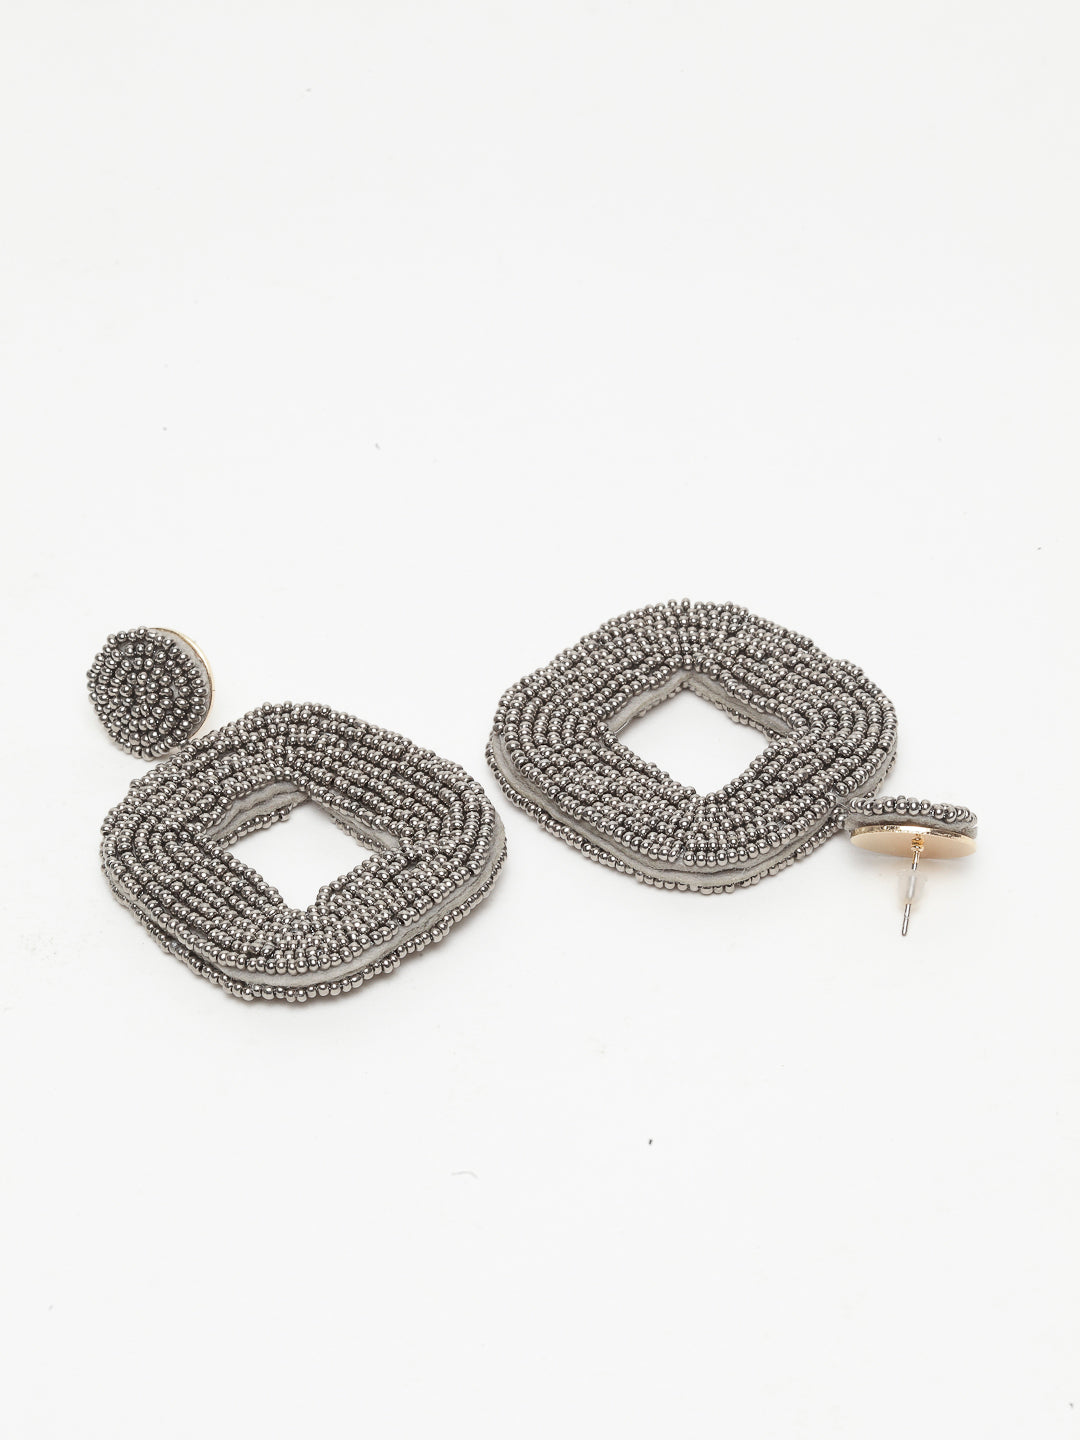 Avant-Garde Paris Bohemian Handmade Geometric Seed Beaded Hoop Earrings